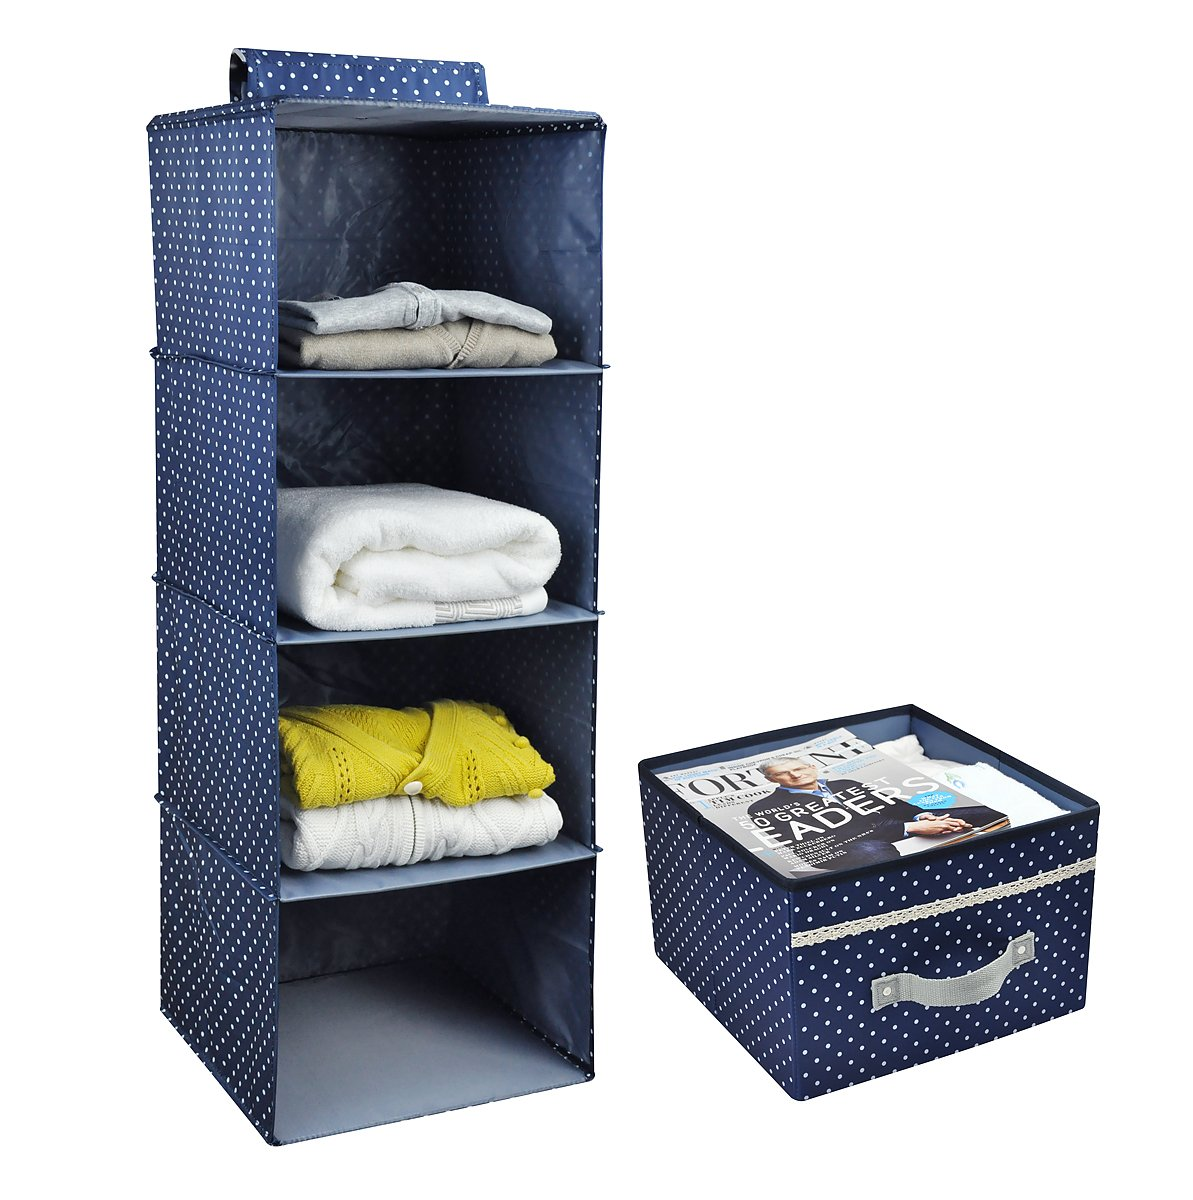 Awesome Amazon.com: 4 Shelf Hanging Closet Organizer With Drawer, Thick Wooden  Boards Inside, Suit For Clothes, Sweaters, Shoes Storage, Navy Blue Dot:  Home U0026 ...